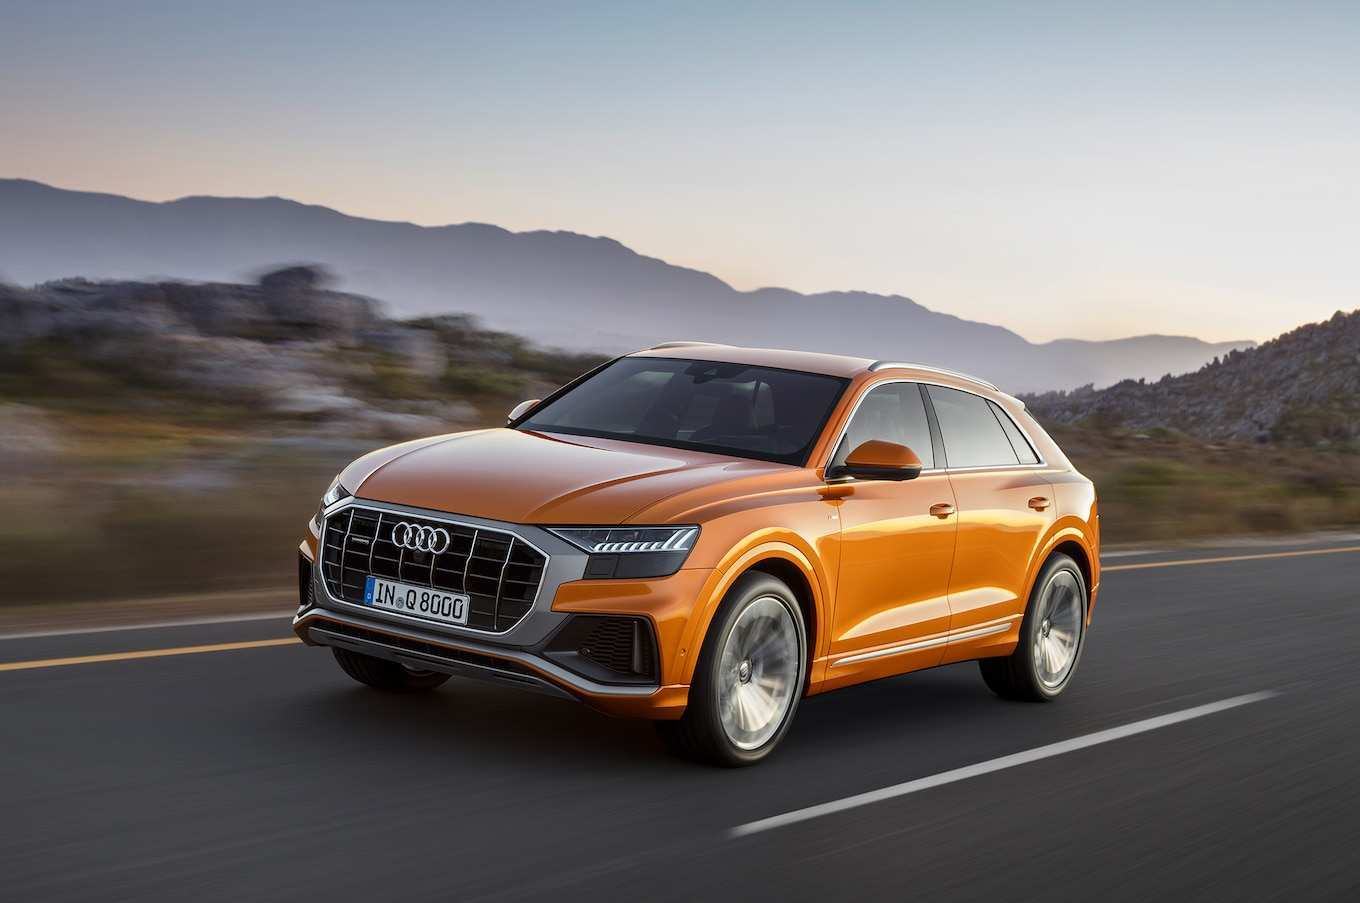 55 Concept of 2019 Audi Q7 Tdi Usa Pictures with 2019 Audi Q7 Tdi Usa